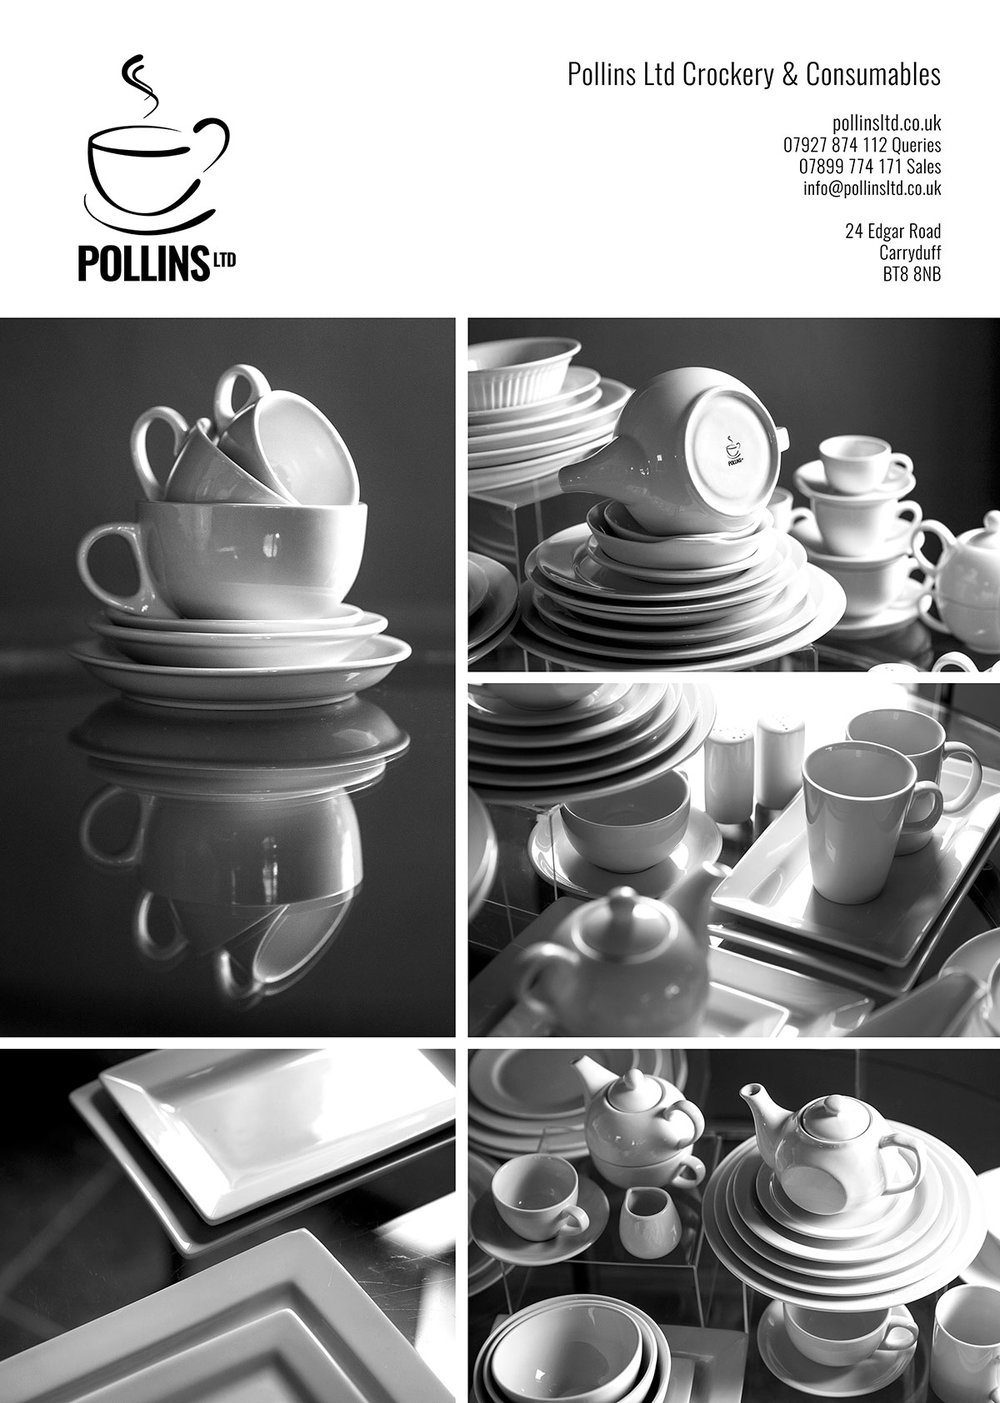 catering-crockery-brochure-1.jpg